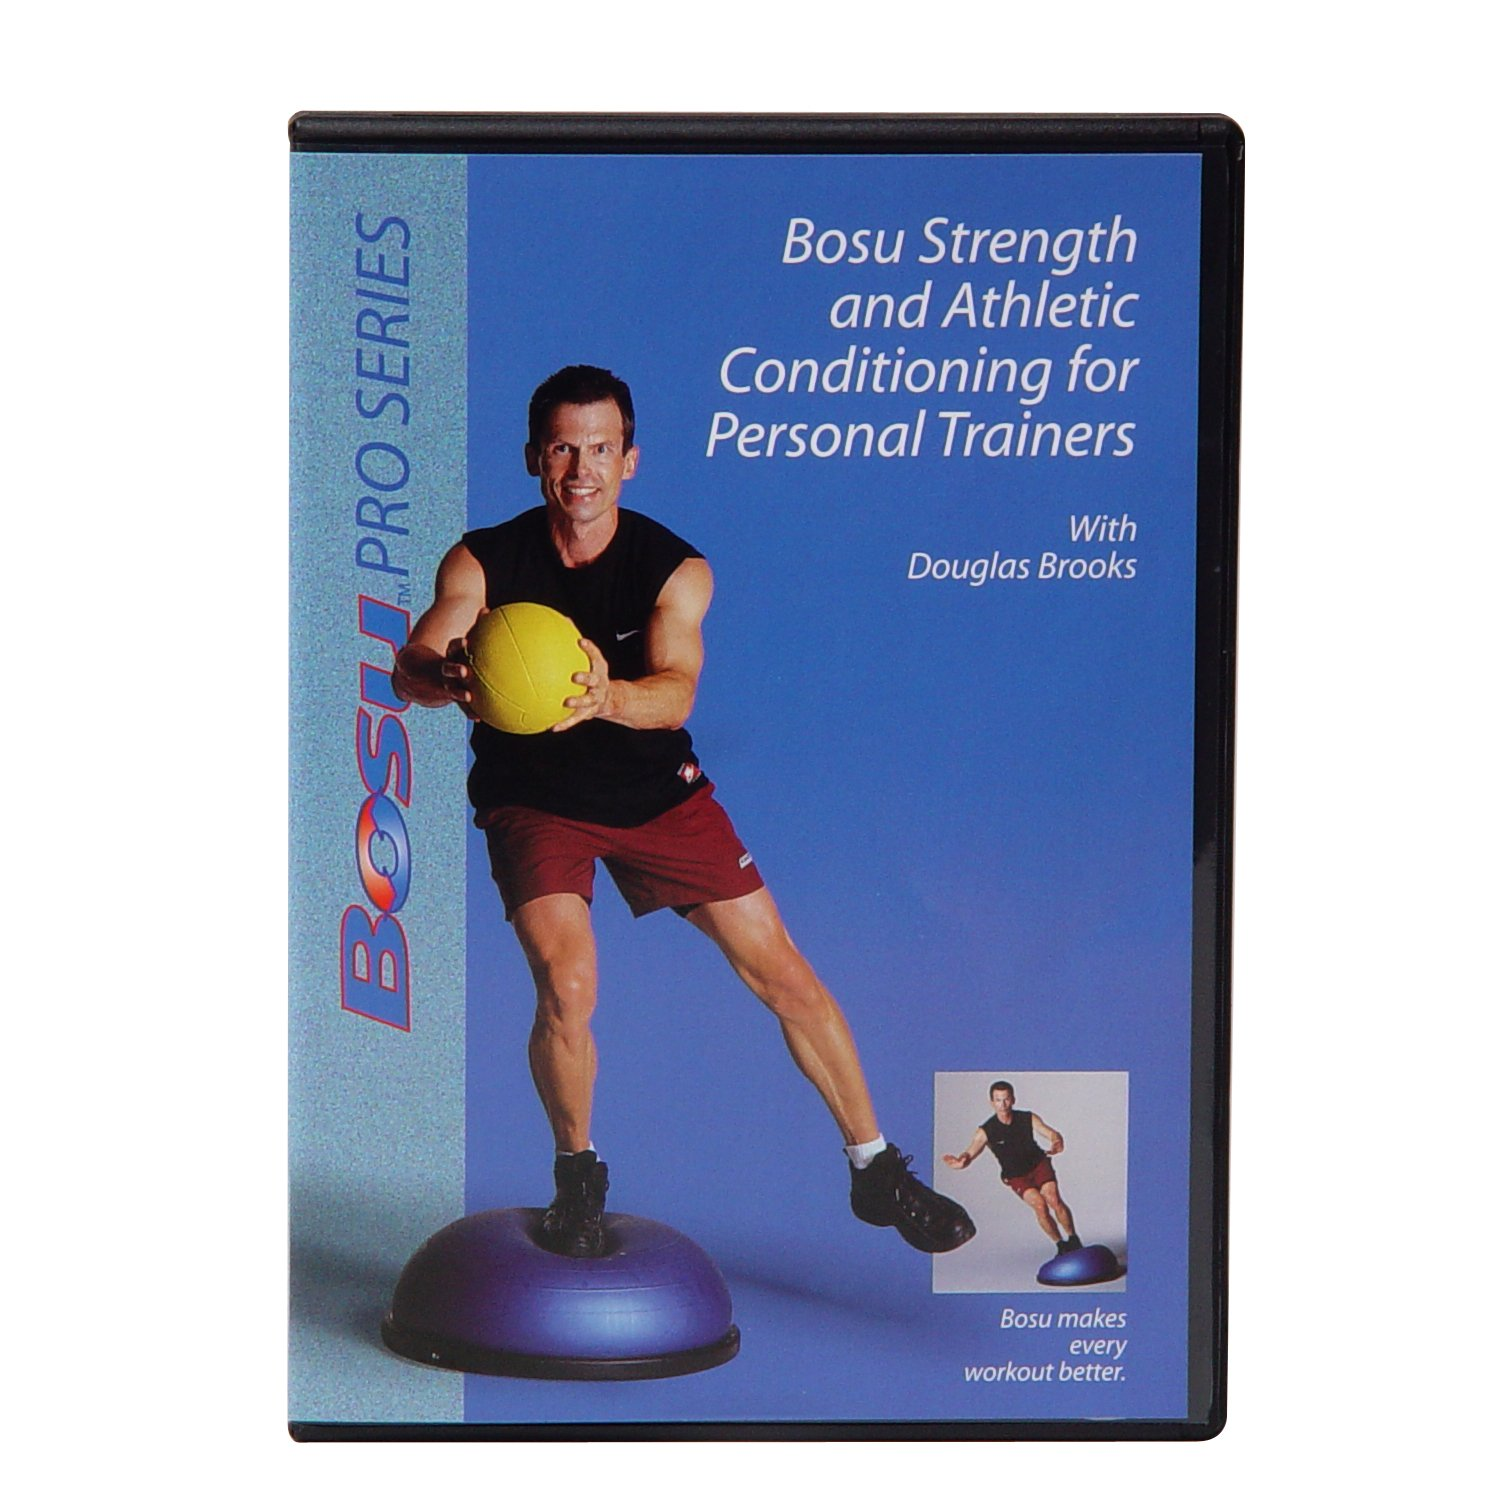 Bosu Strength and Athletic Conditioning for Personal Trainers DVD ...